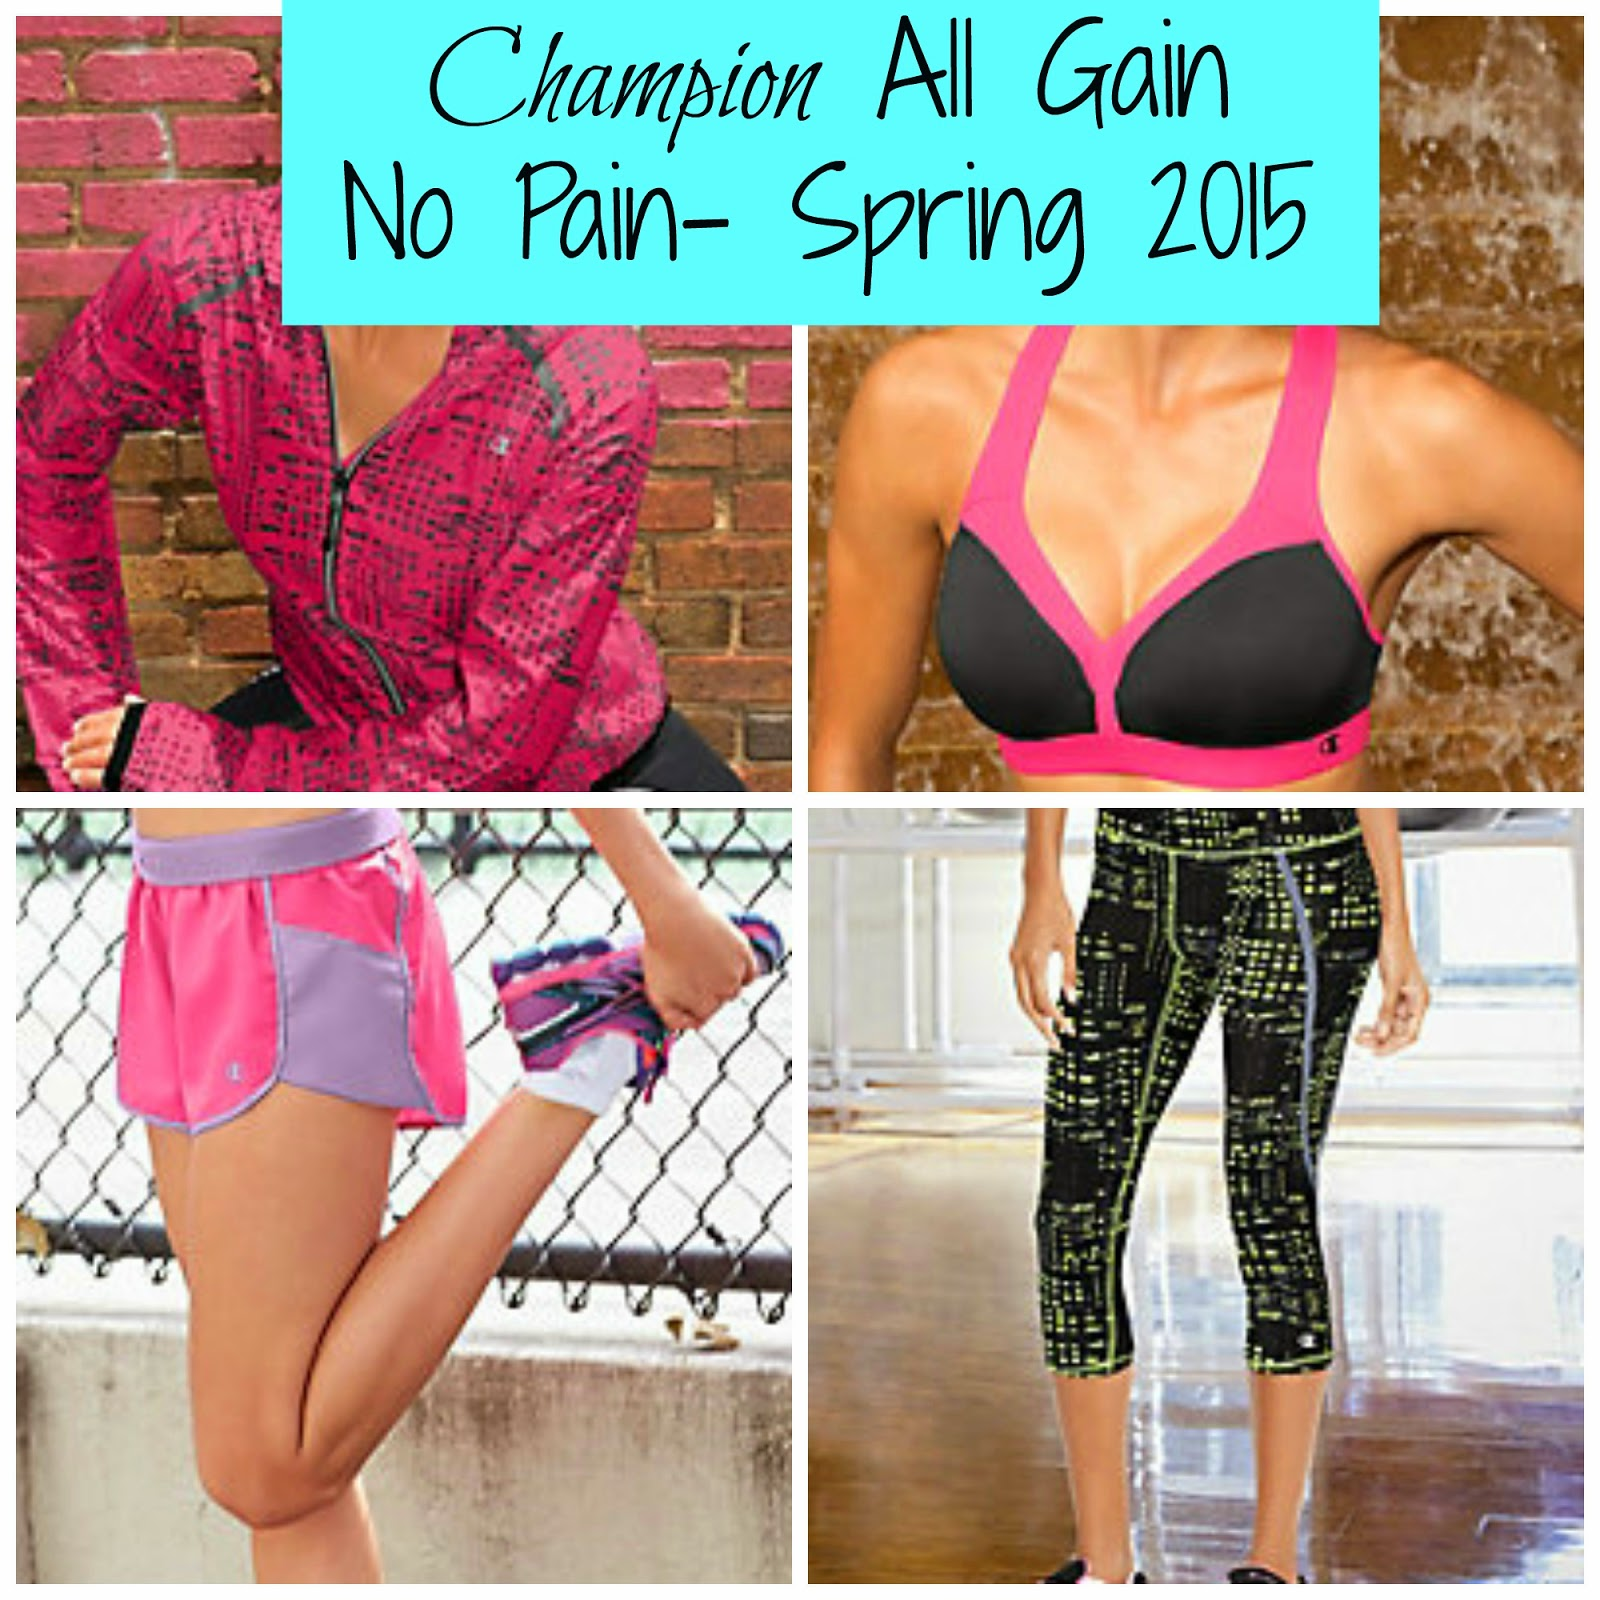 Champion All Gain, No Pain Line Spring 2015